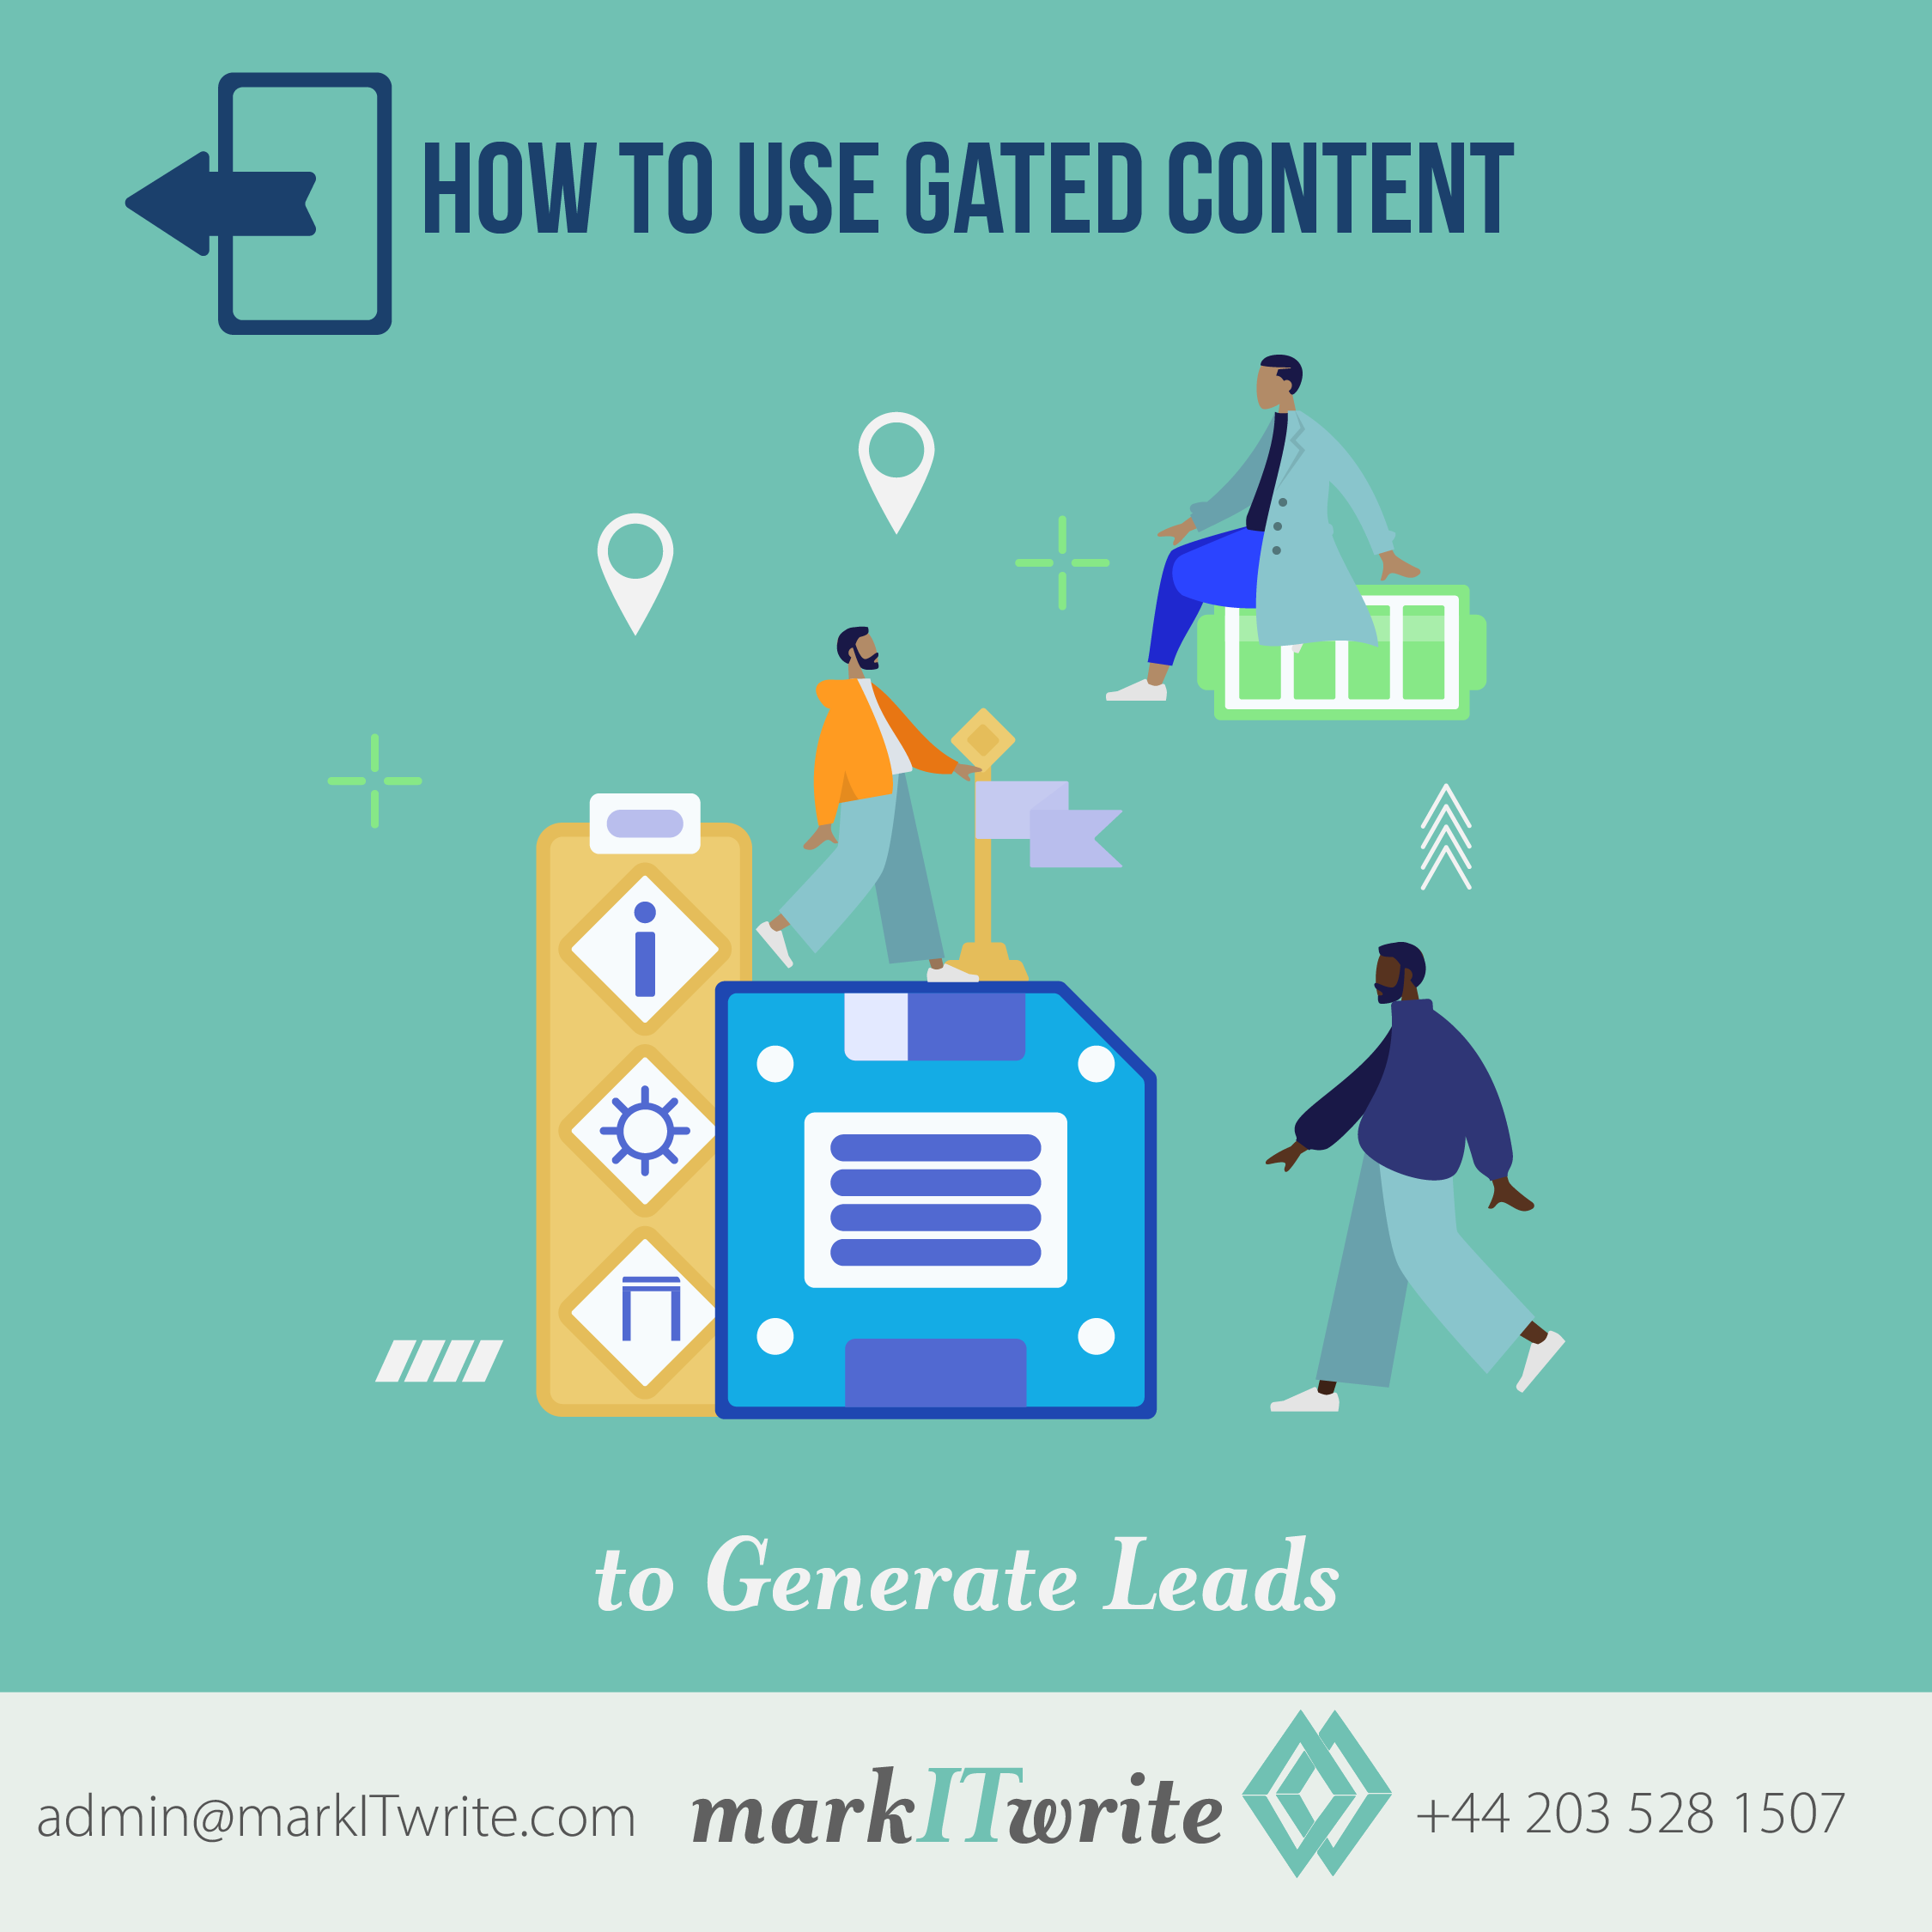 How to Use Gated Content to Generate Leads